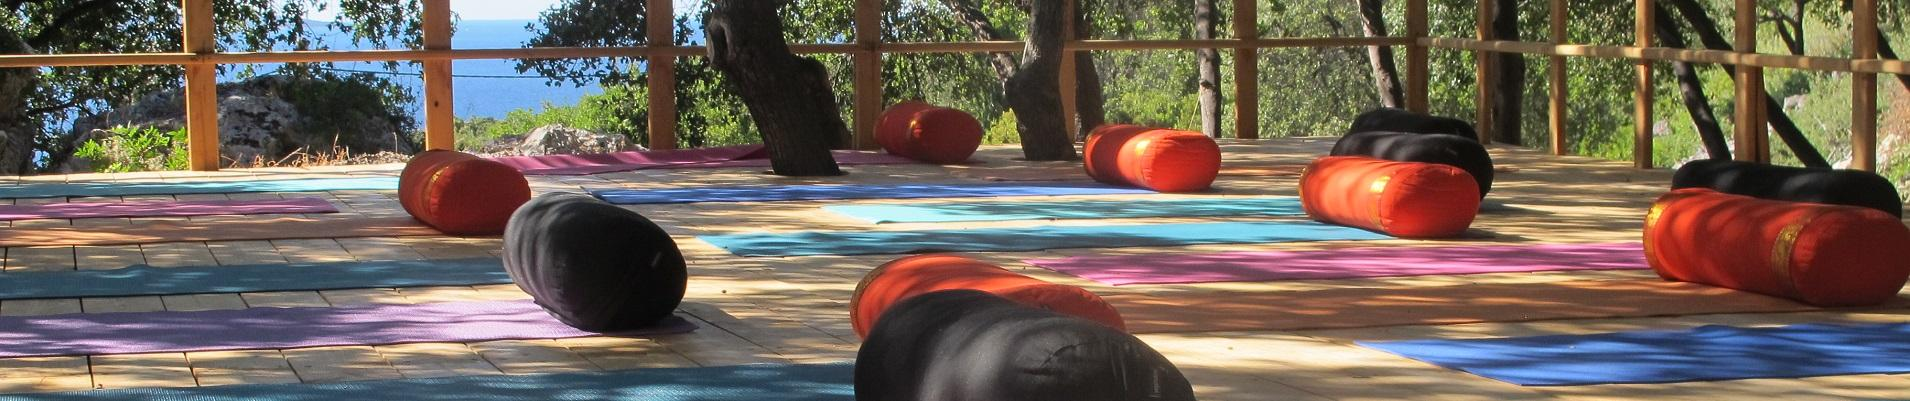 Sicily villas with yoga classes